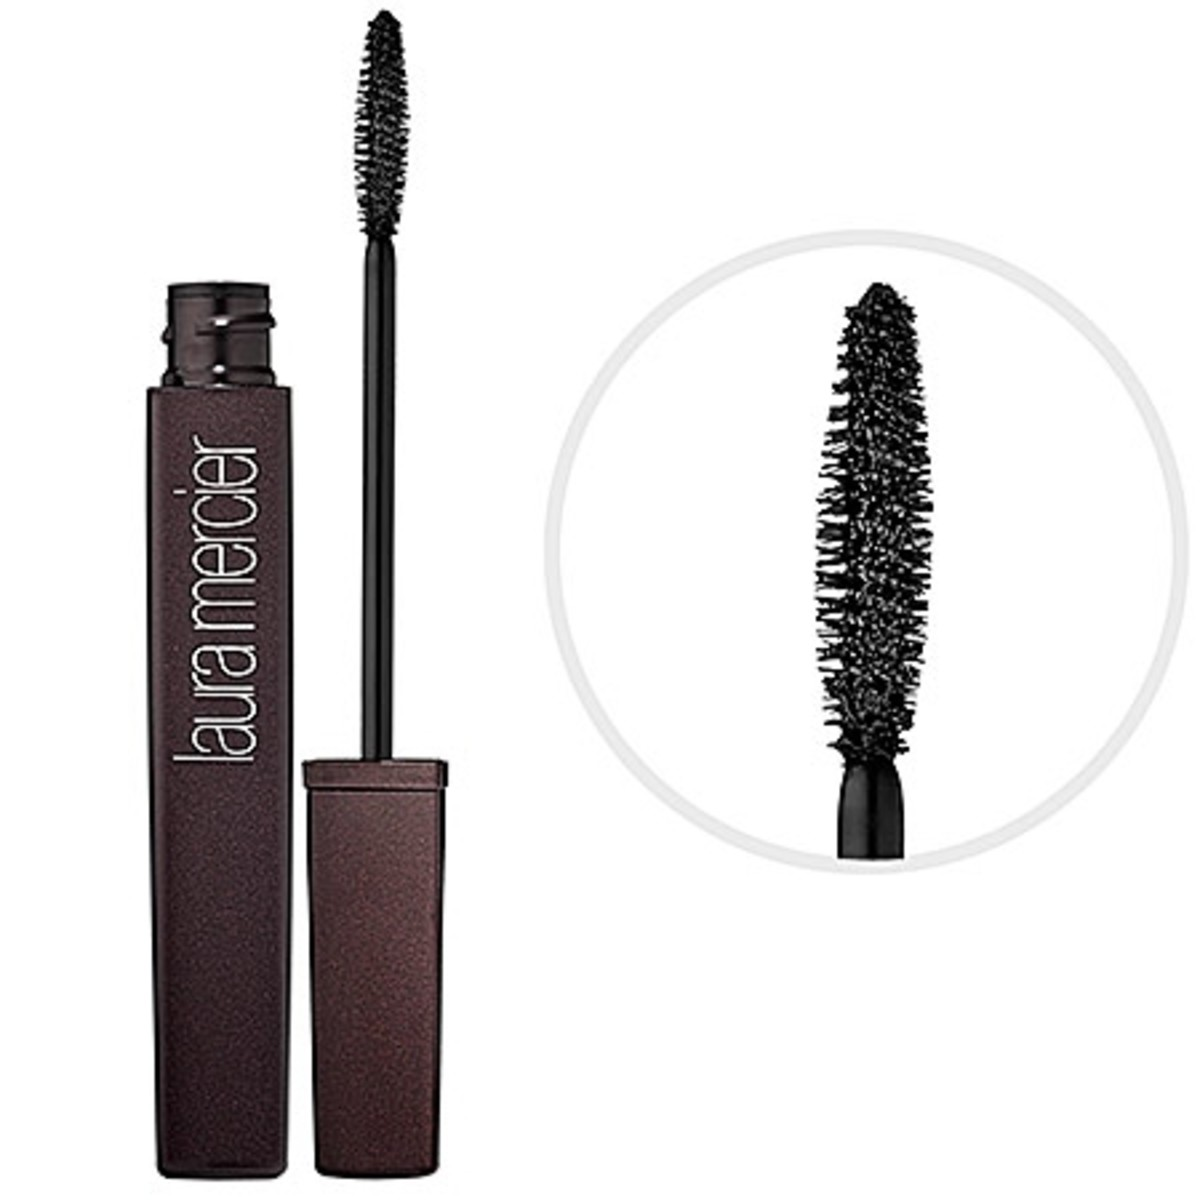 Laura Mercier Long Lash Mascara in Black